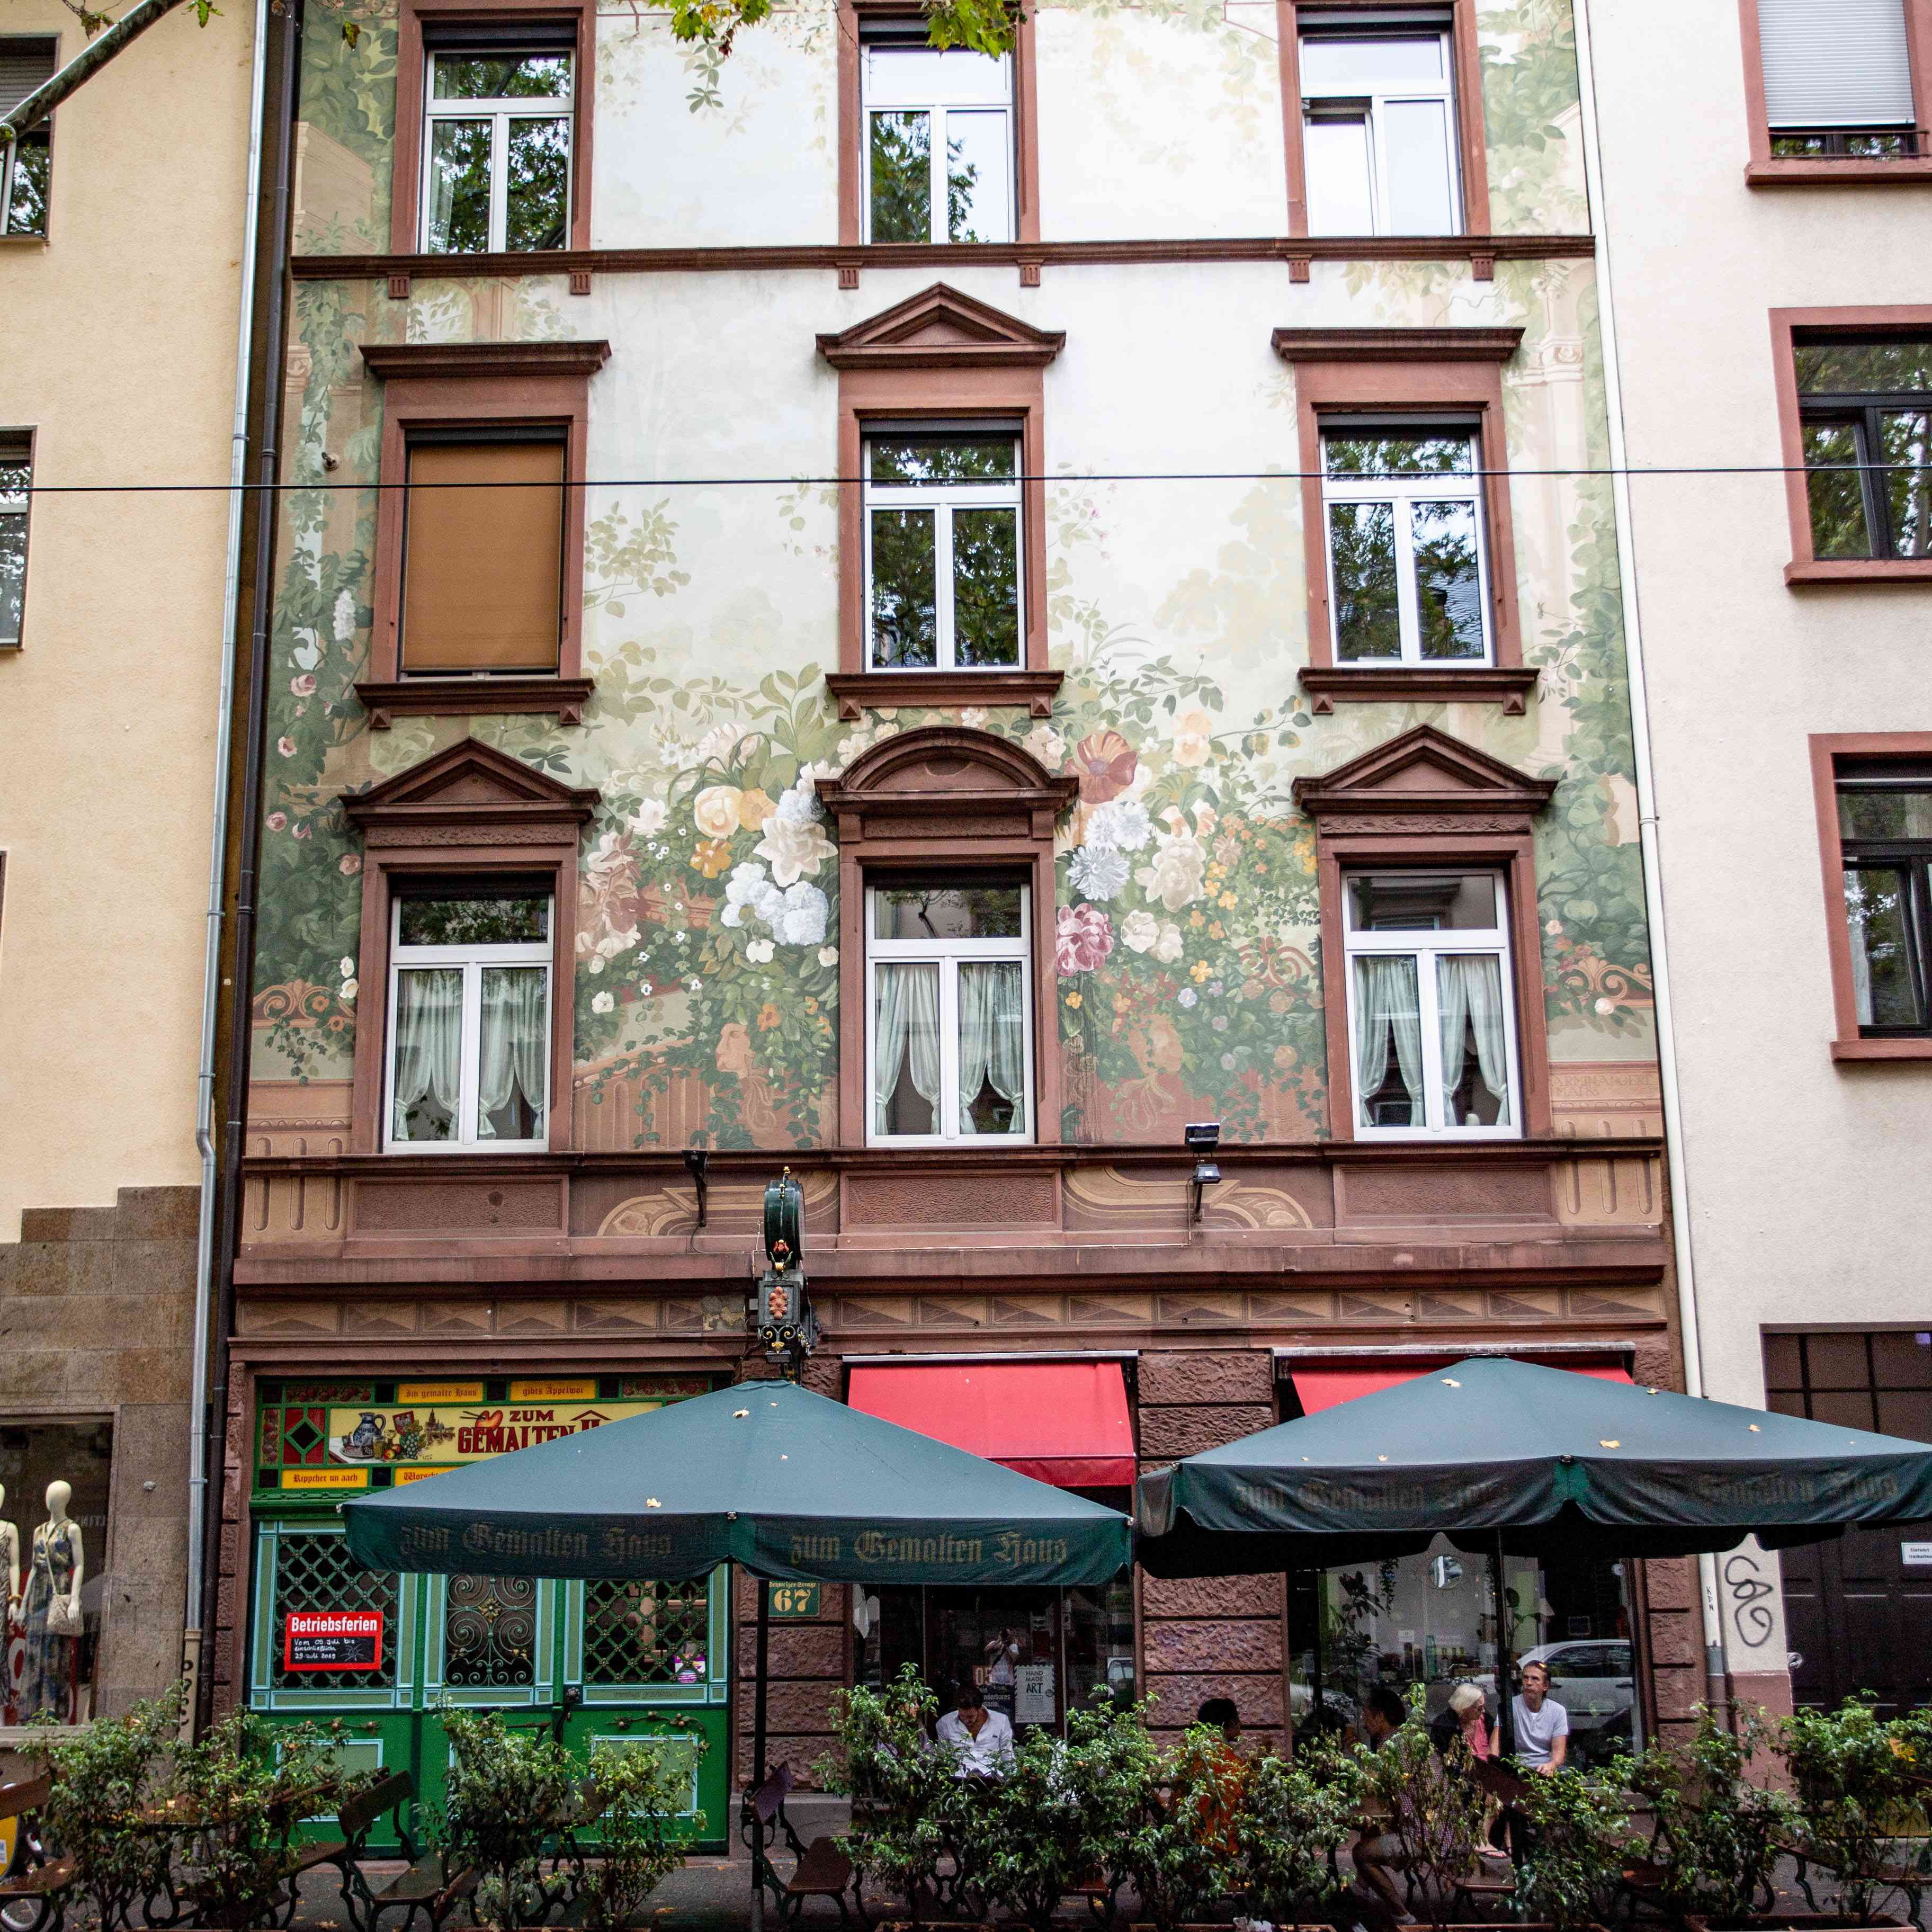 Building with floral design on the facade in Sachsenhuas